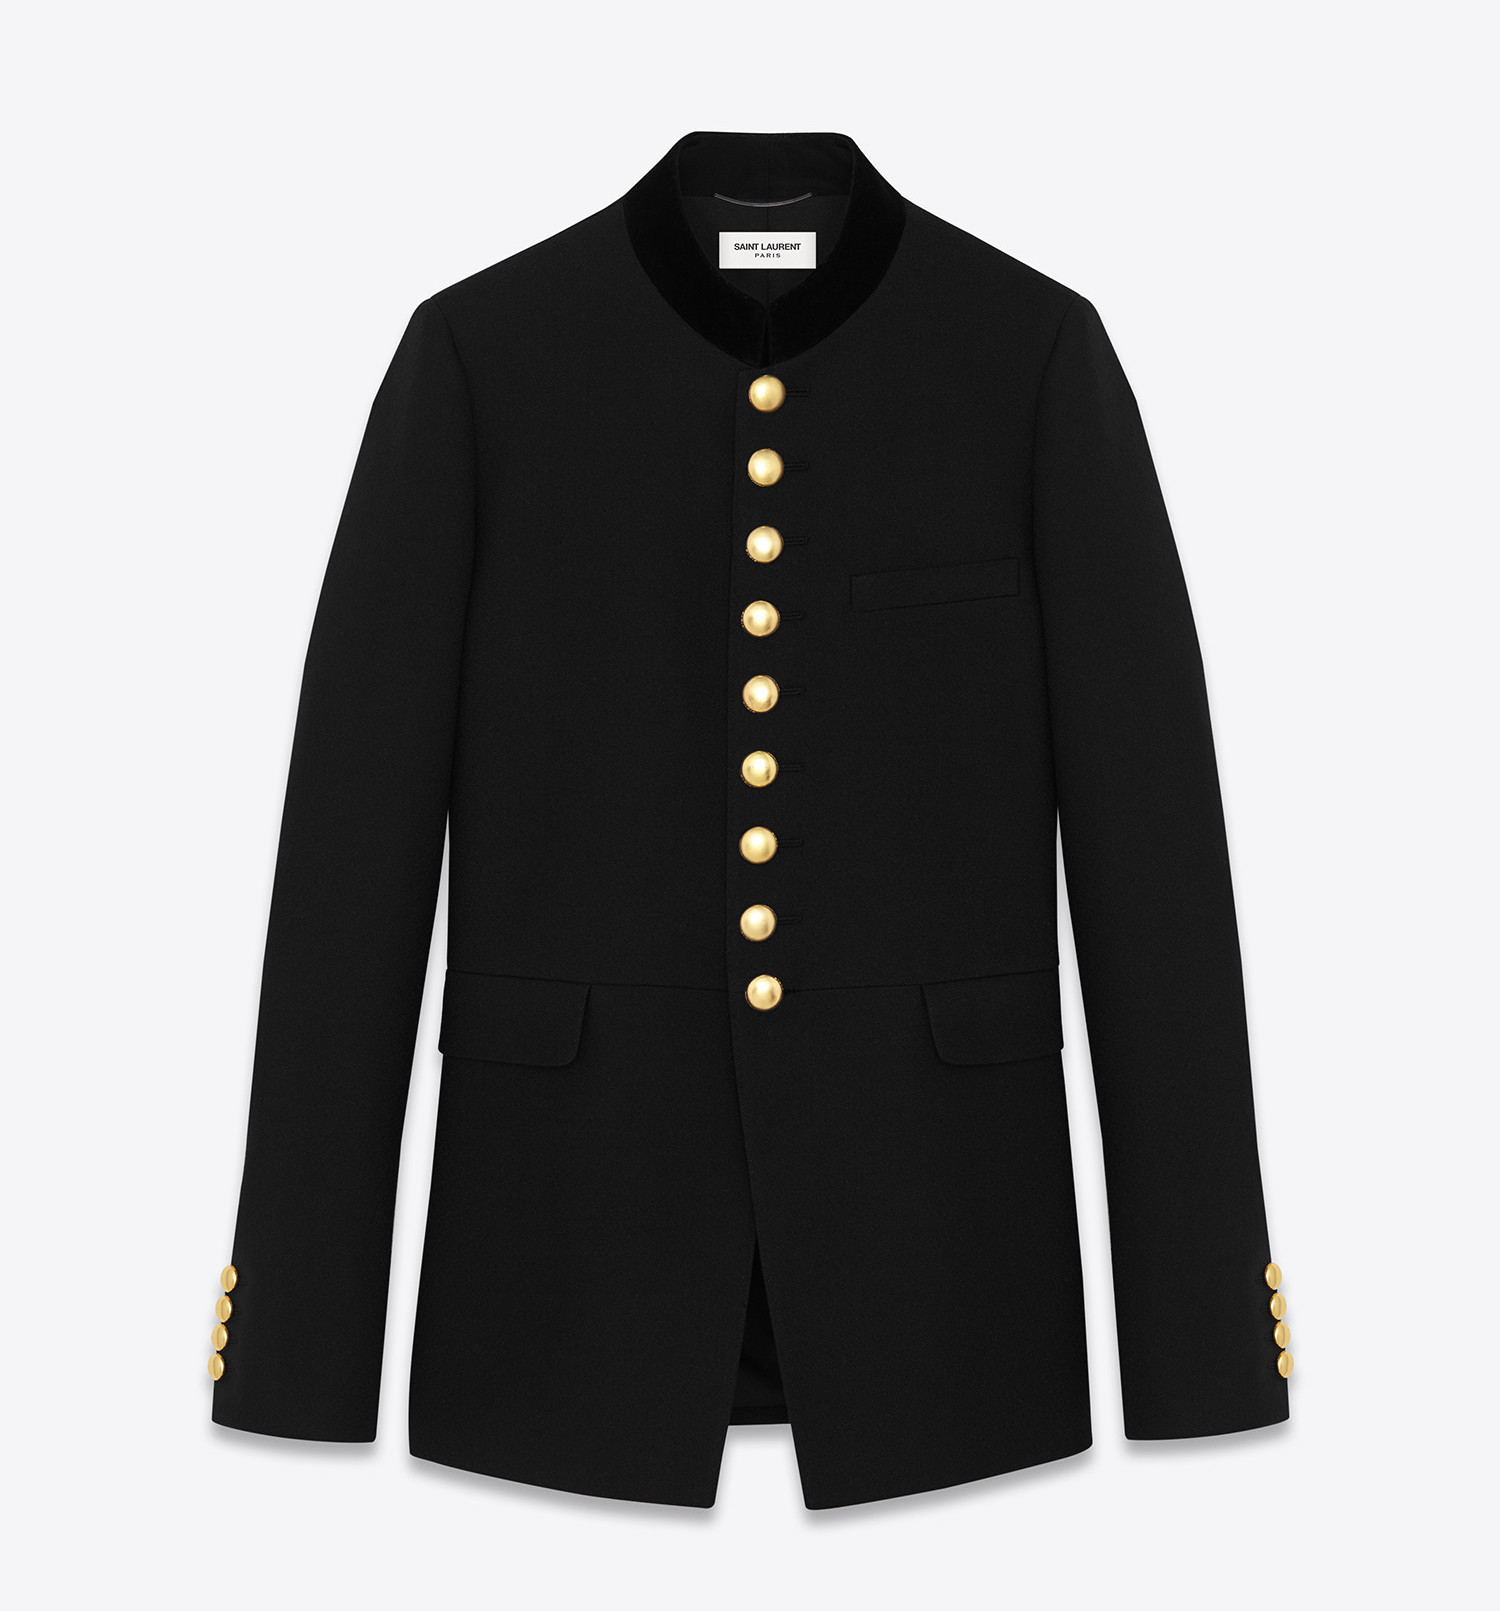 saint-laurent-long-officer-jacket